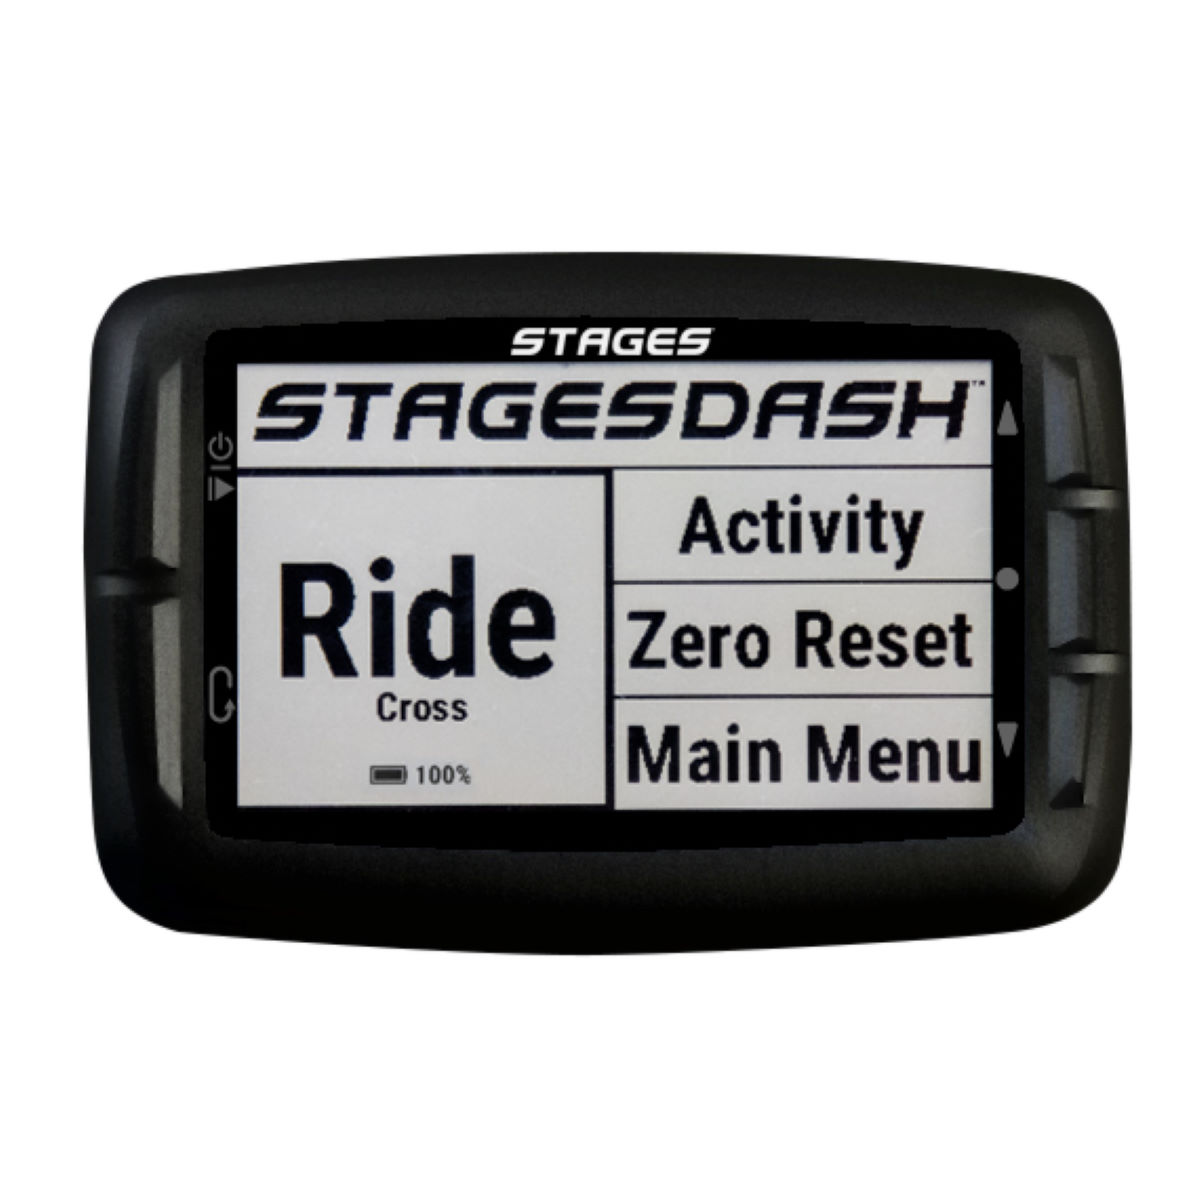 Ciclocomputador Stages Cycling Dash - Ciclocomputadores - GPS